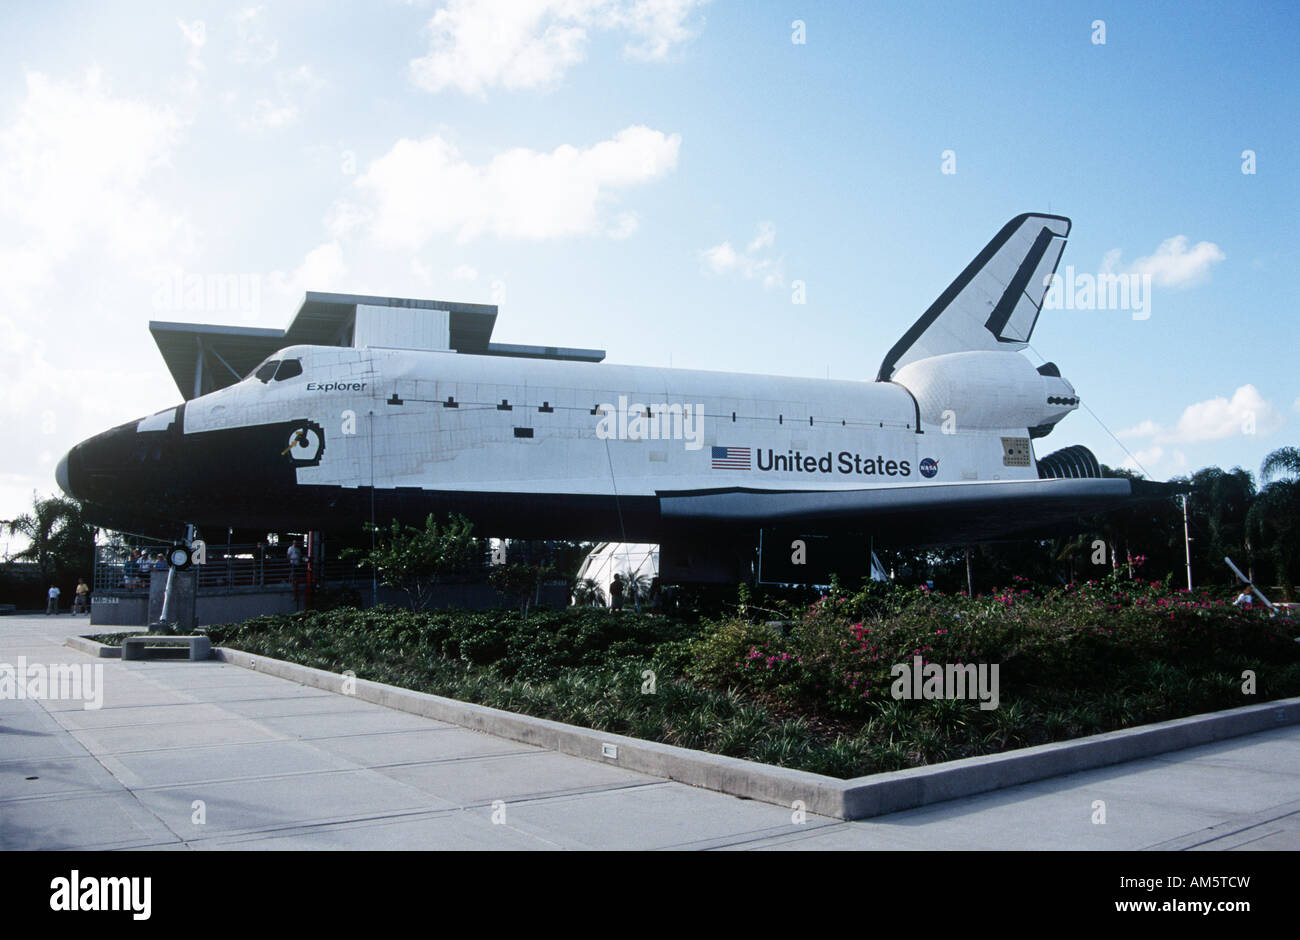 space shuttle kennedy - photo #3